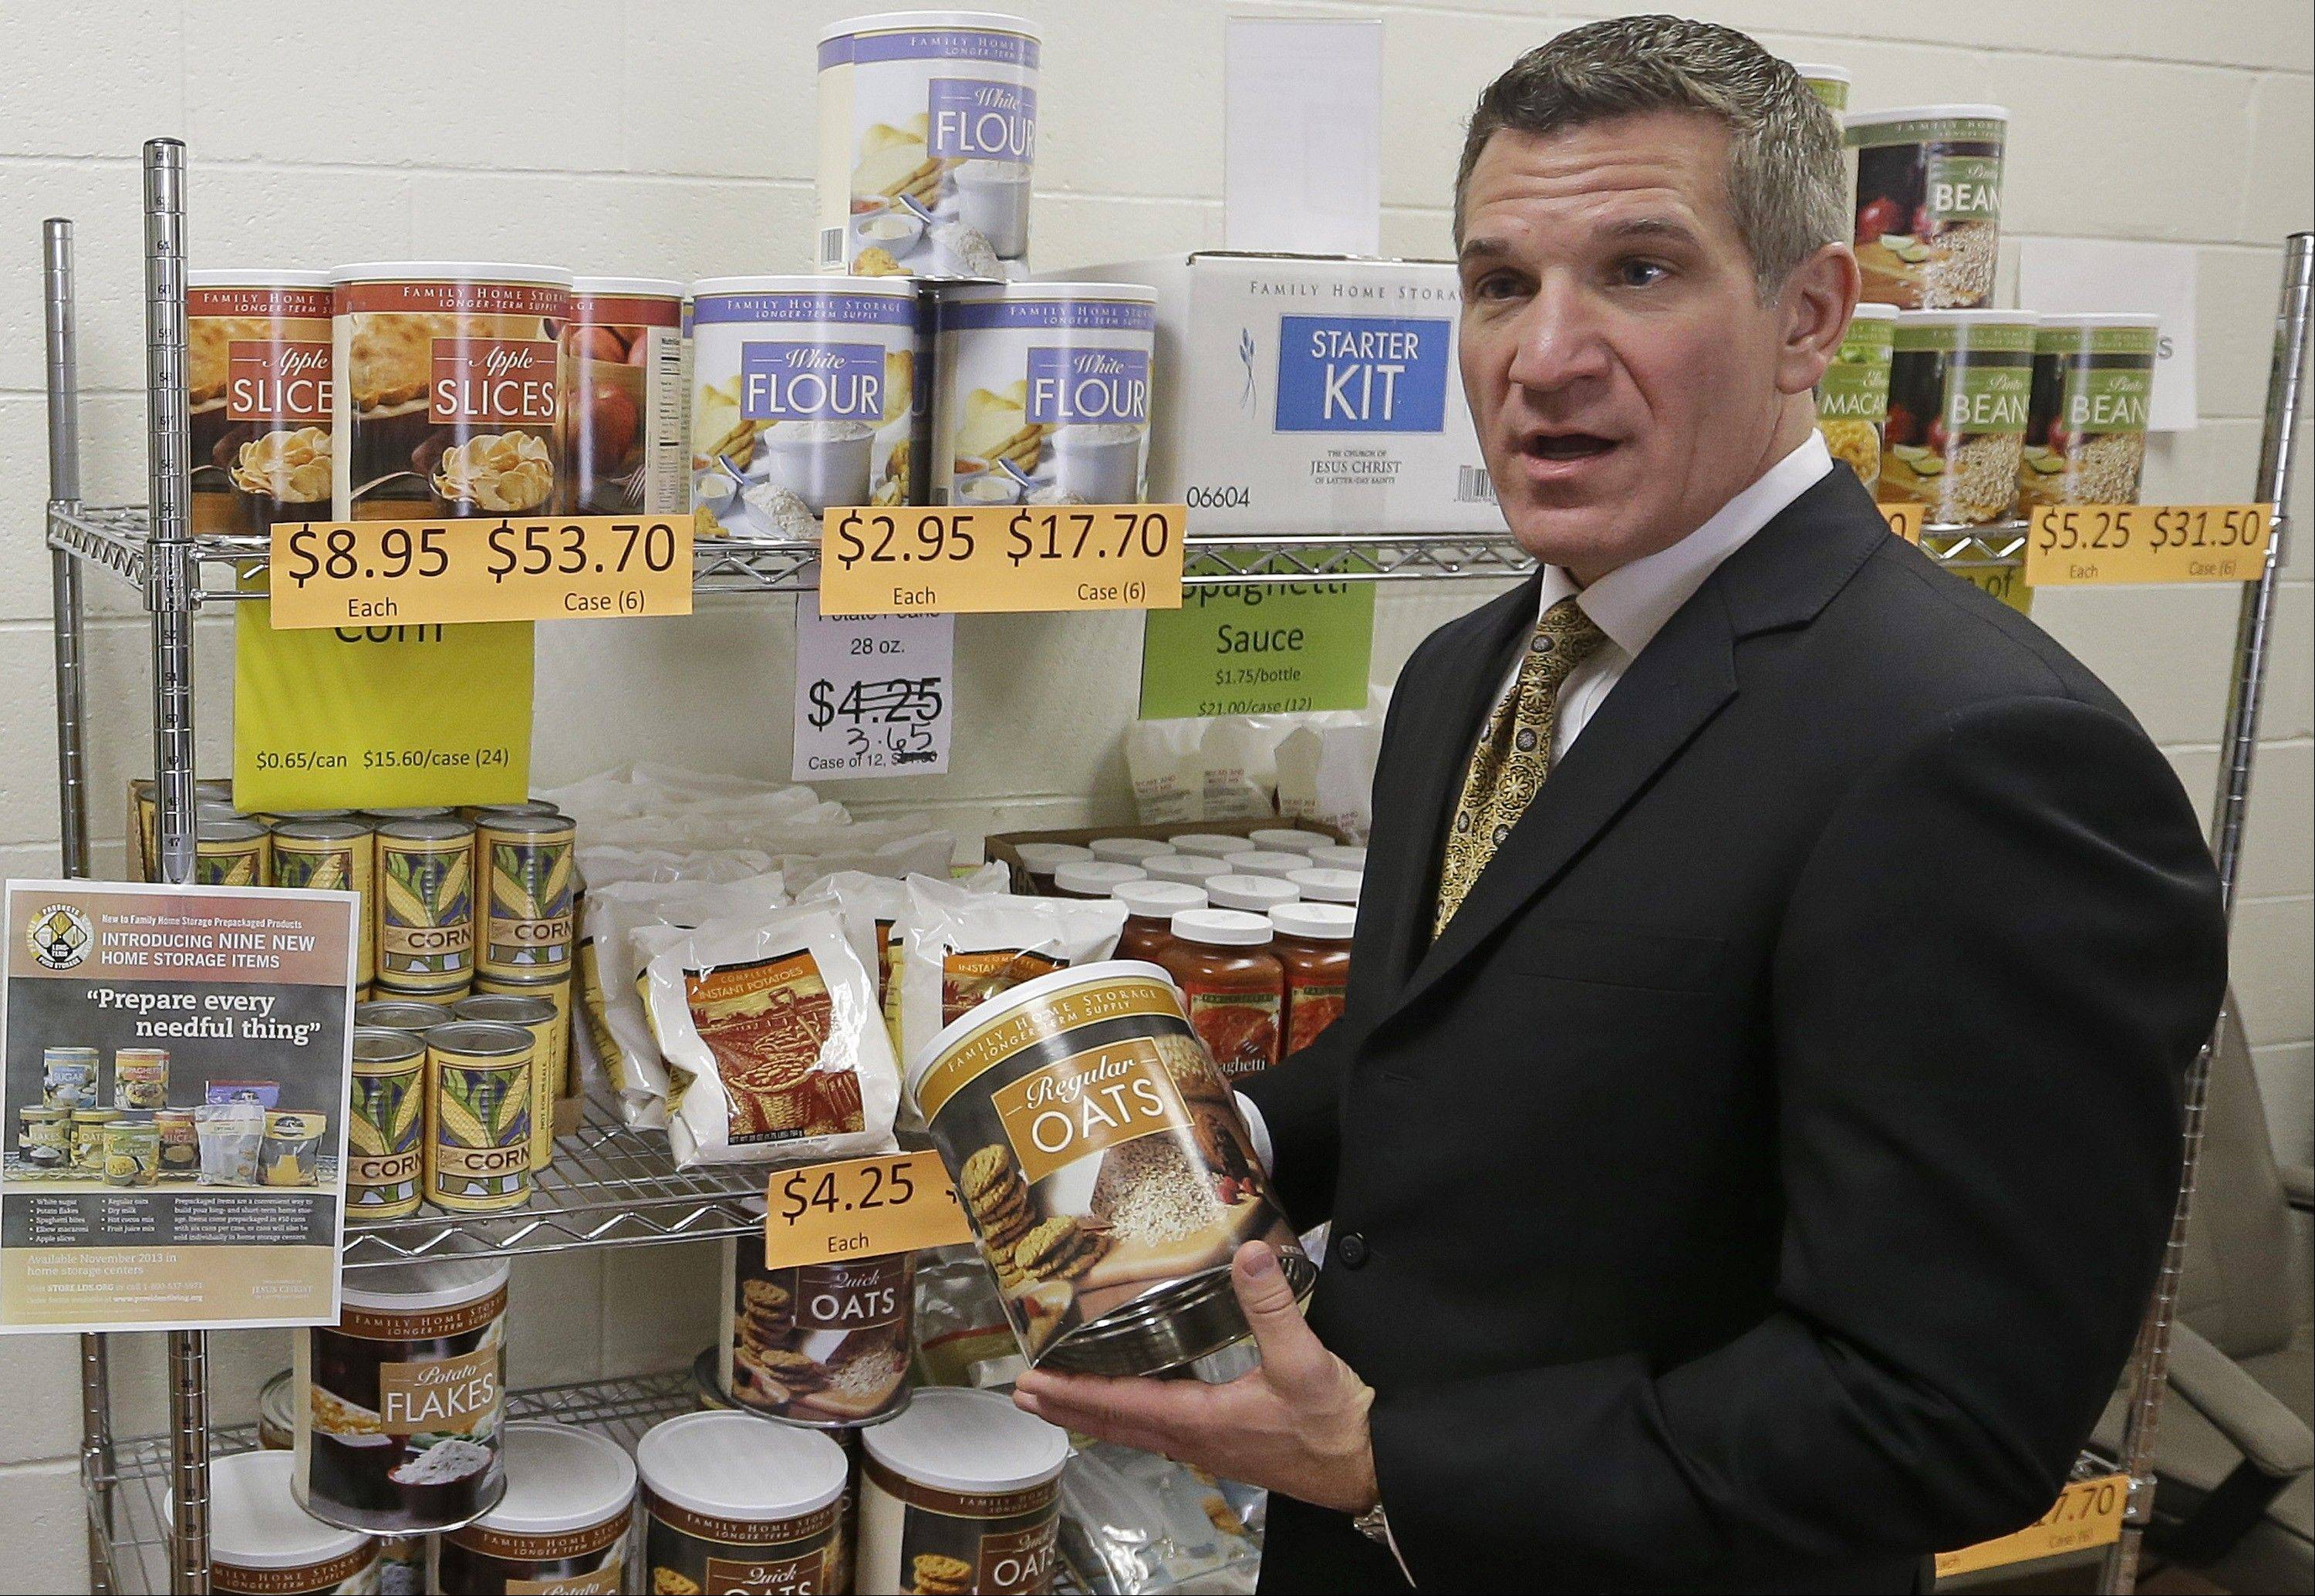 Rick Foster, manager of North America Humanitarian Services with the Church of Jesus Christ of Latter-day Saints, talks about the Mormon Church's Welfare Square in Salt Lake City, where people can buy large cans and bags of oats, wheat, sugar, potato flakes and beans. Many Mormons buy items from this center as they compile a three-month supply of food, while also storing away food that can last as long as 30 years.